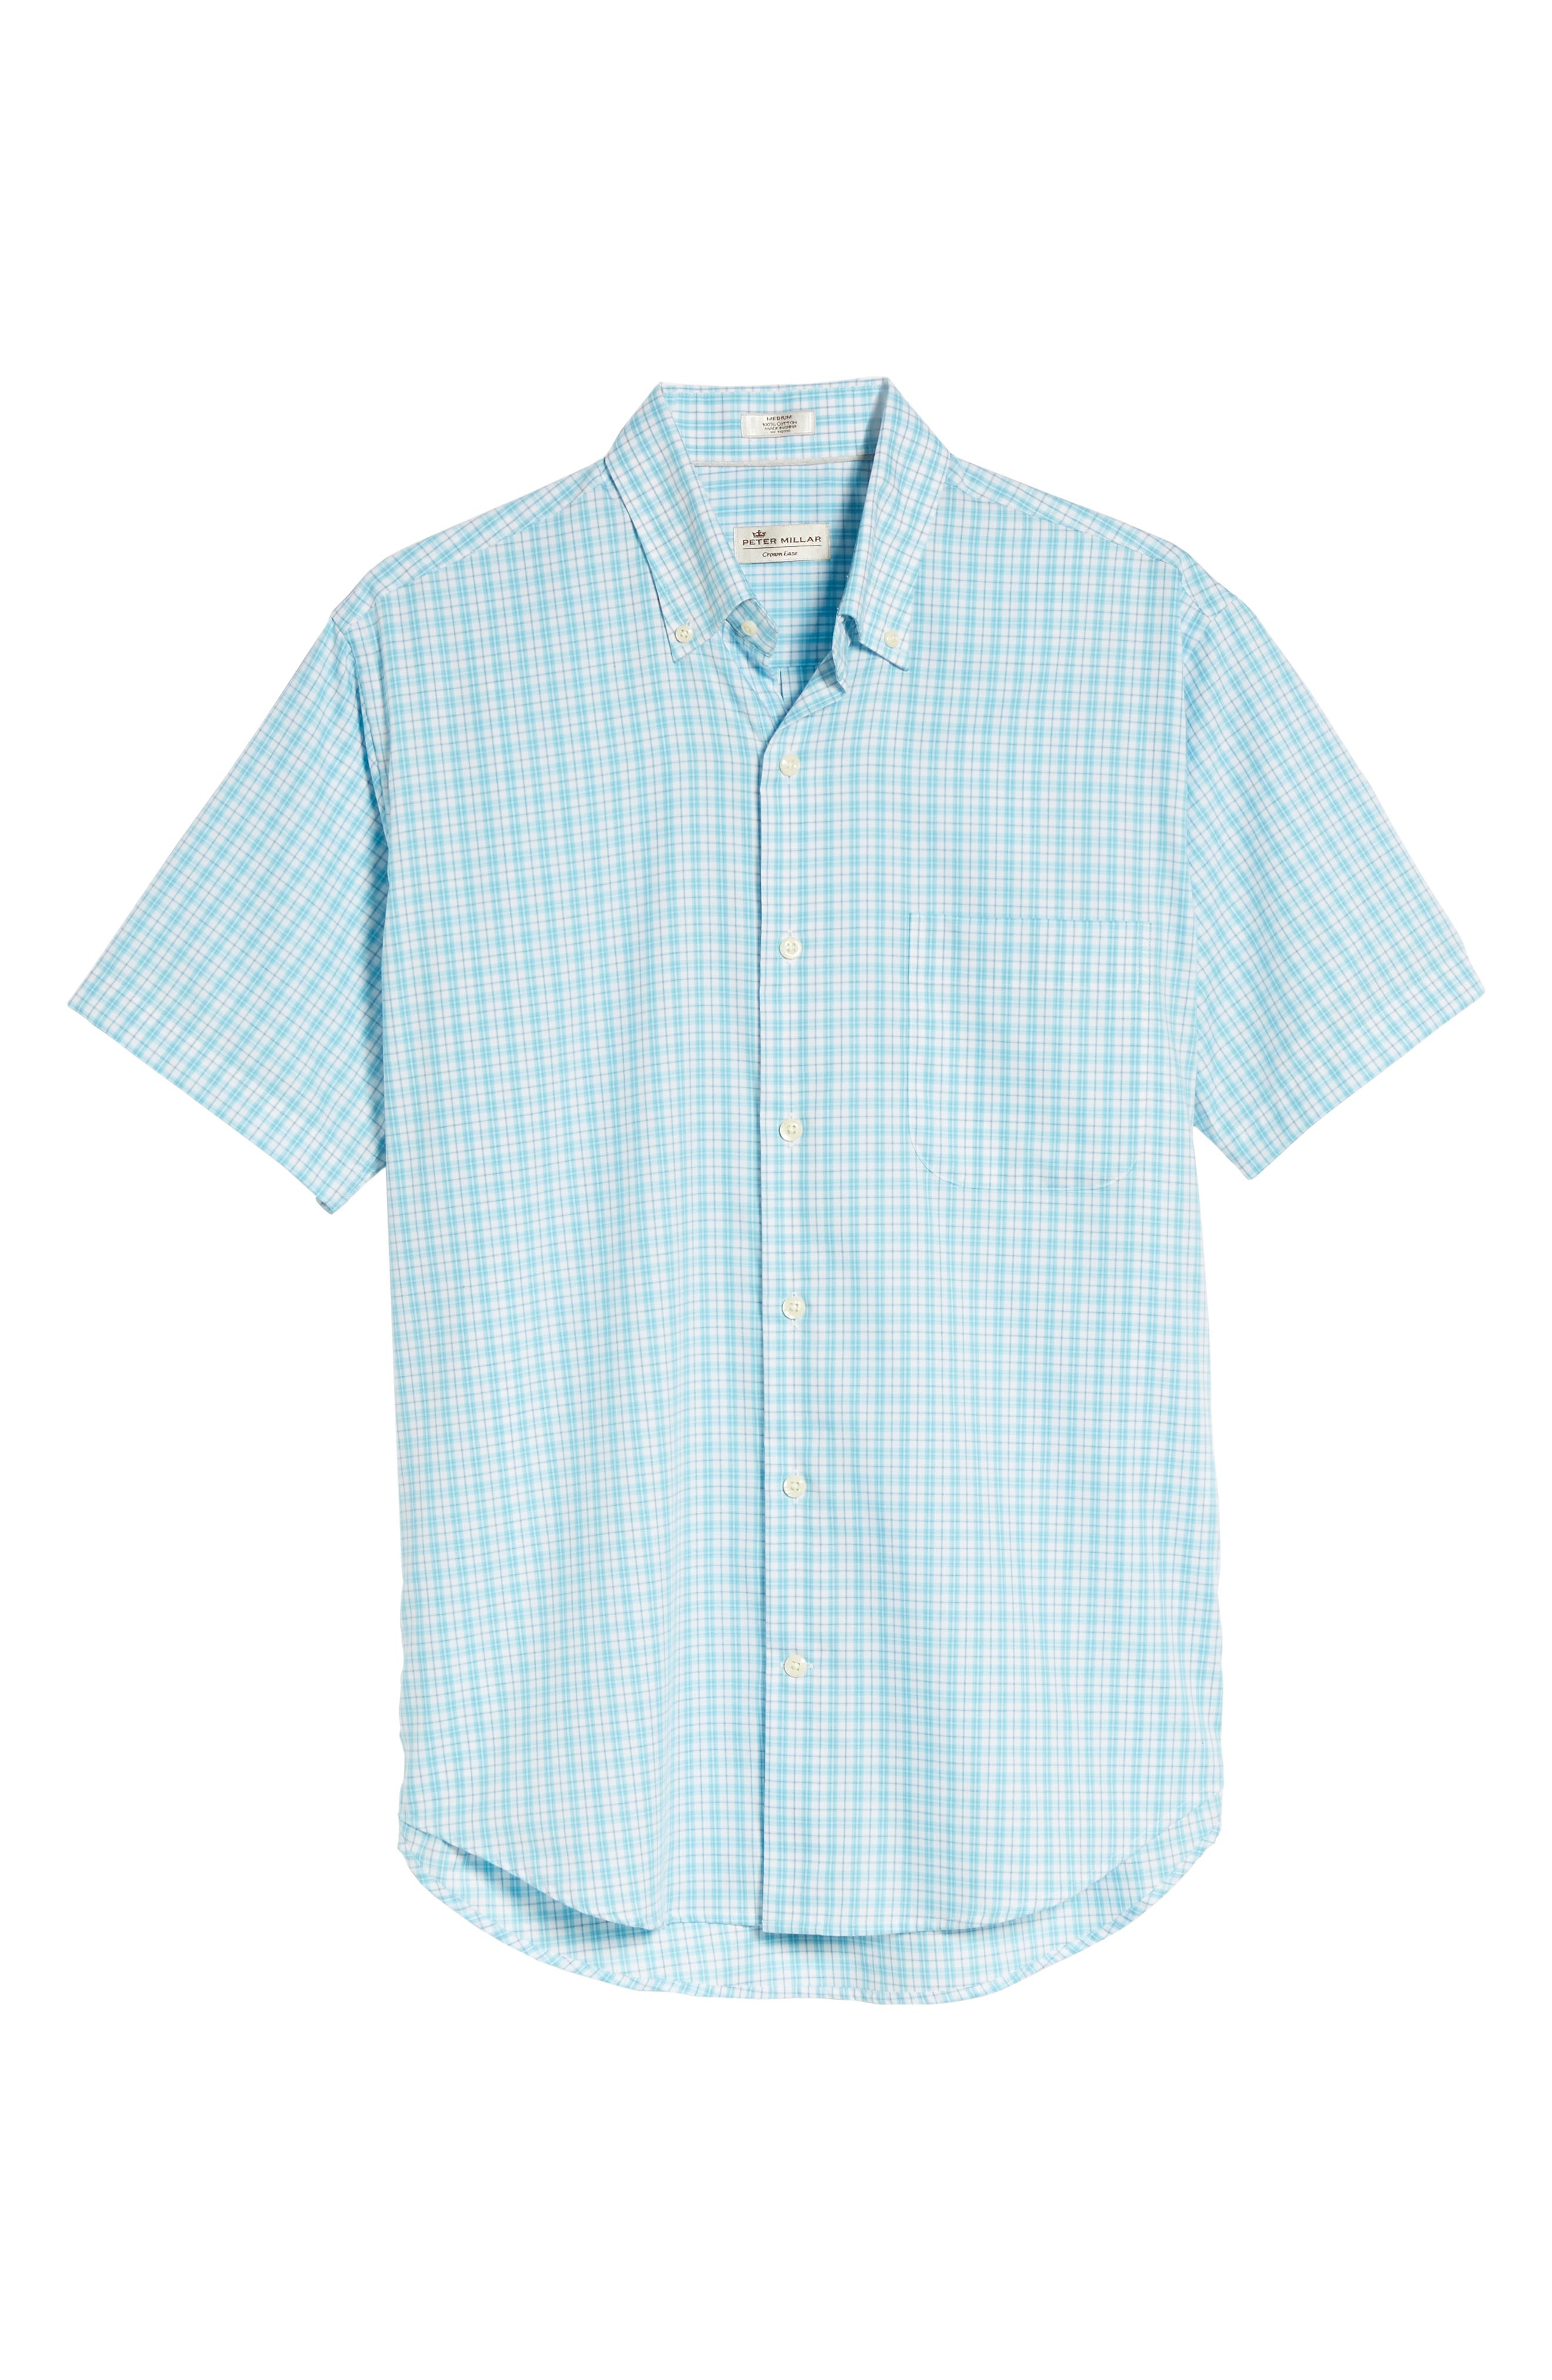 PETER MILLAR,                             Crown Ease Eventide Check Sport Shirt,                             Alternate thumbnail 6, color,                             BLUE FISH